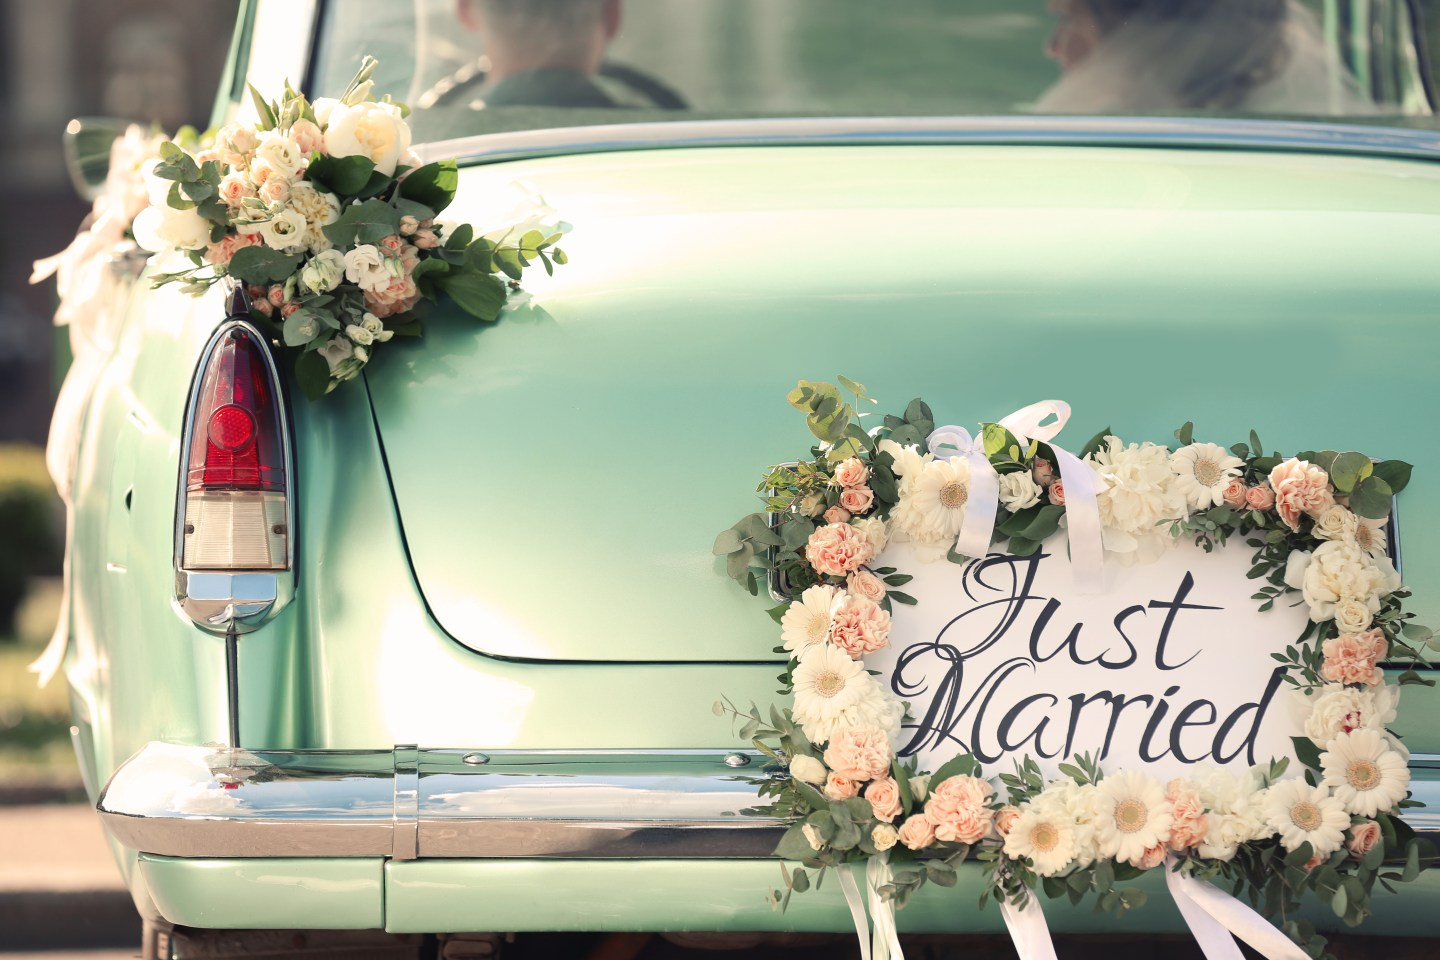 How To Have An Inexpensive Wedding: 12 Insanely Smart Ways To Save Money